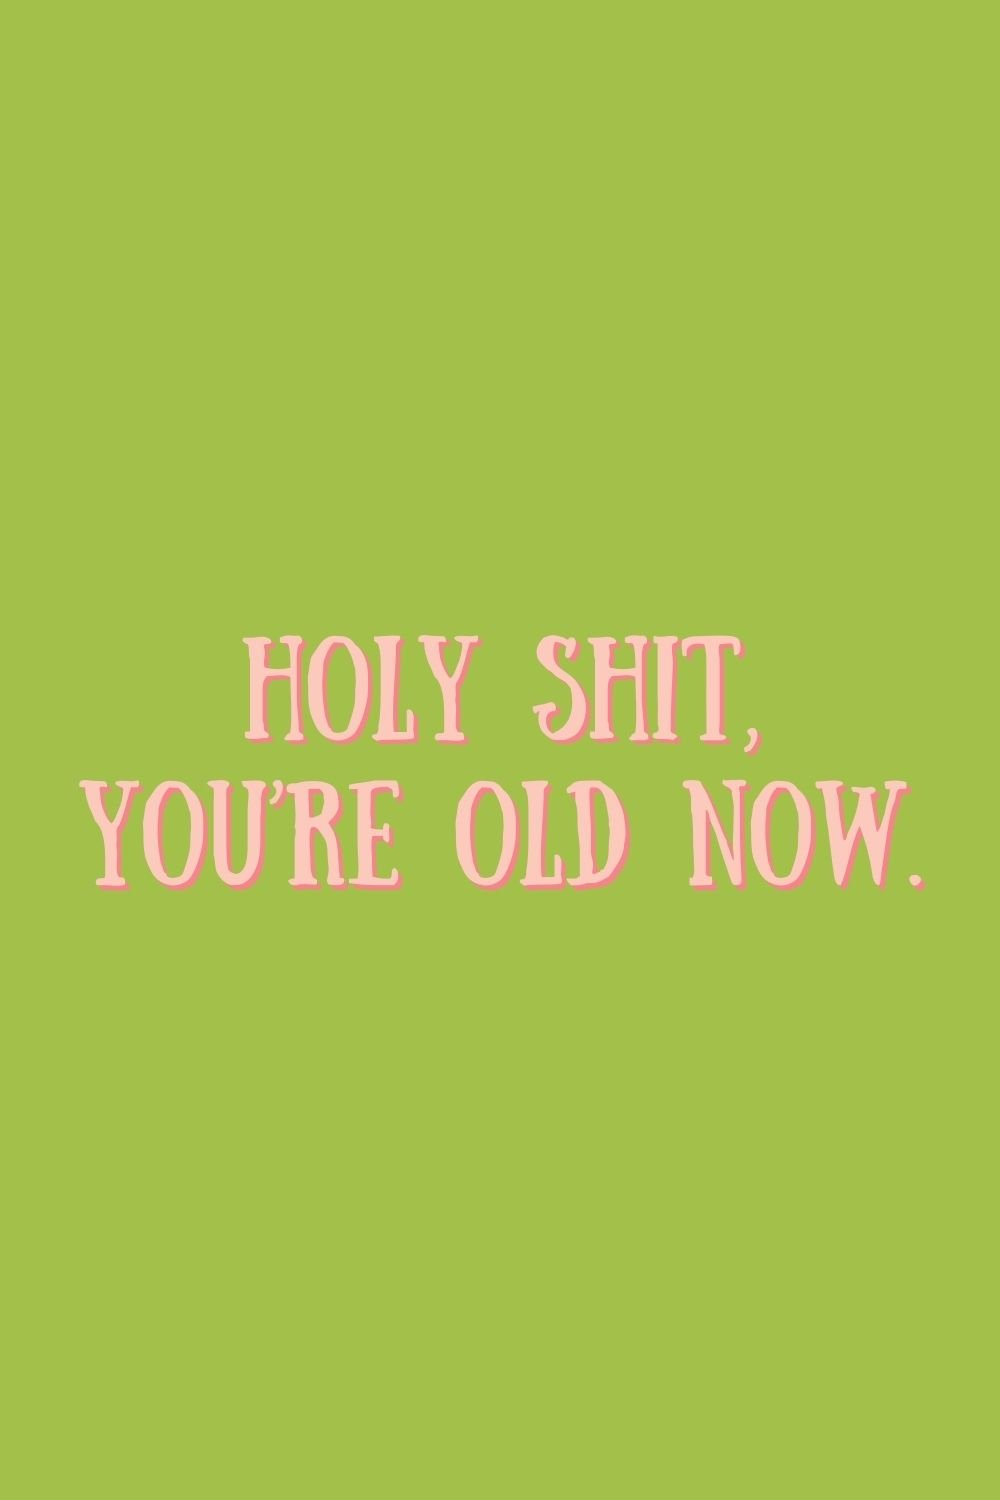 Getting older sayings, quotes about getting old